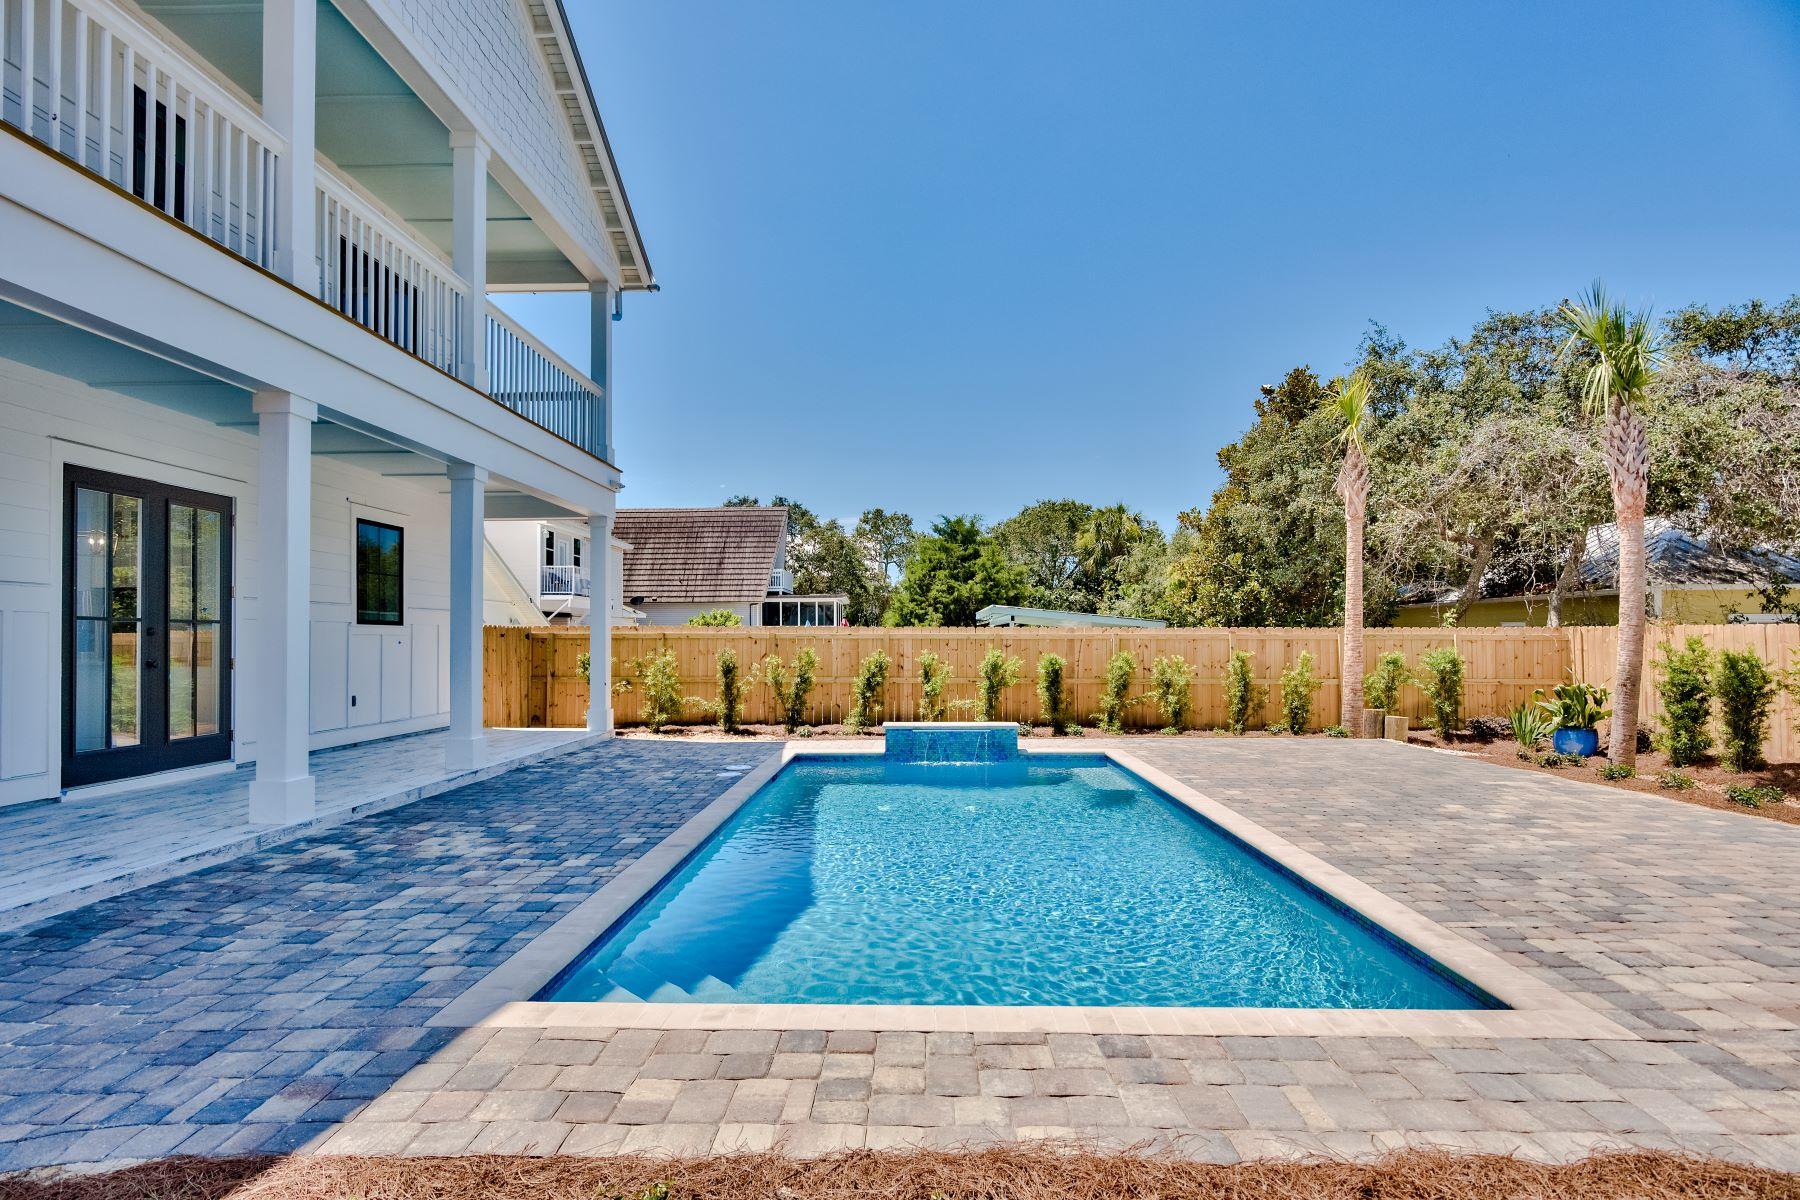 Single Family Homes for Active at Newly Built Home with Private Pool Perfect for Investment 92 Cobia Street Destin, Florida 32541 United States